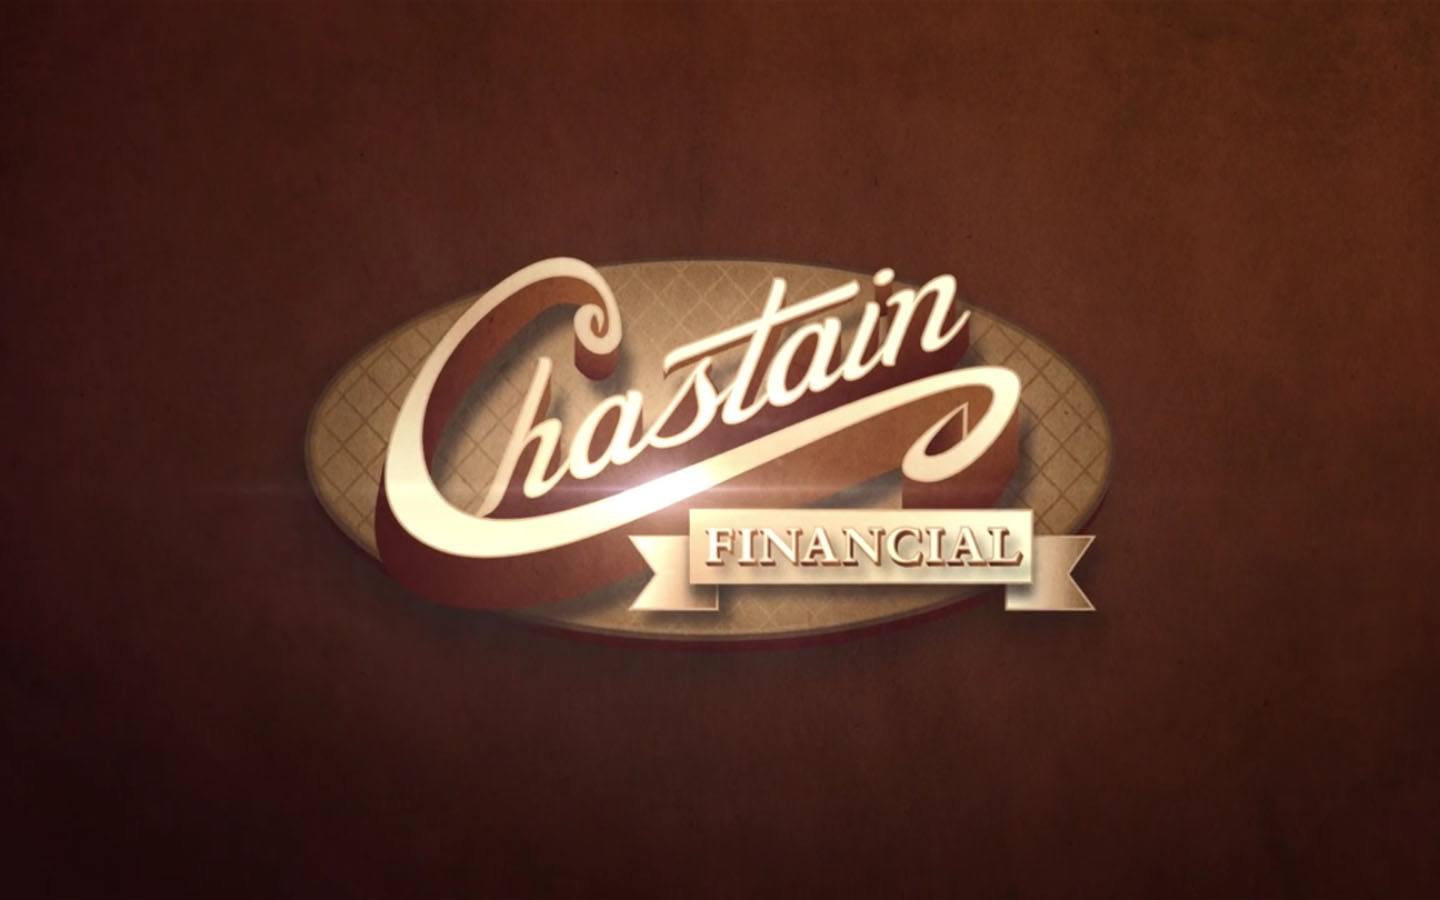 Chastain Financial Article Image.jpg